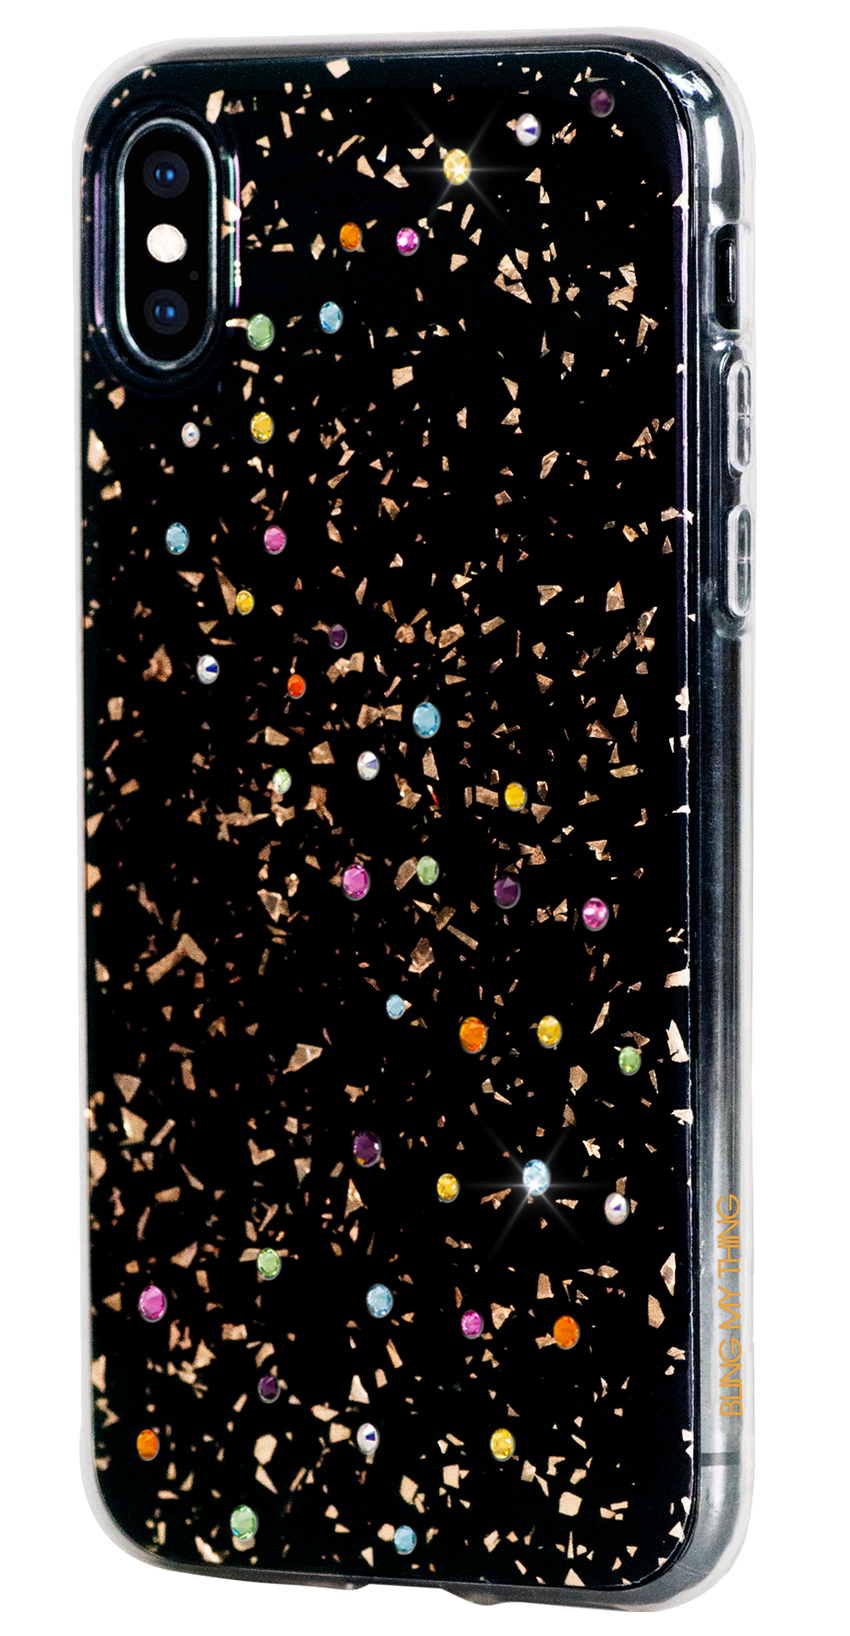 For iPhone XS Max : MILKY WAY ᛫ BLACK GALAXY ᛫ clip-on hard cover with Swarovski Crystals